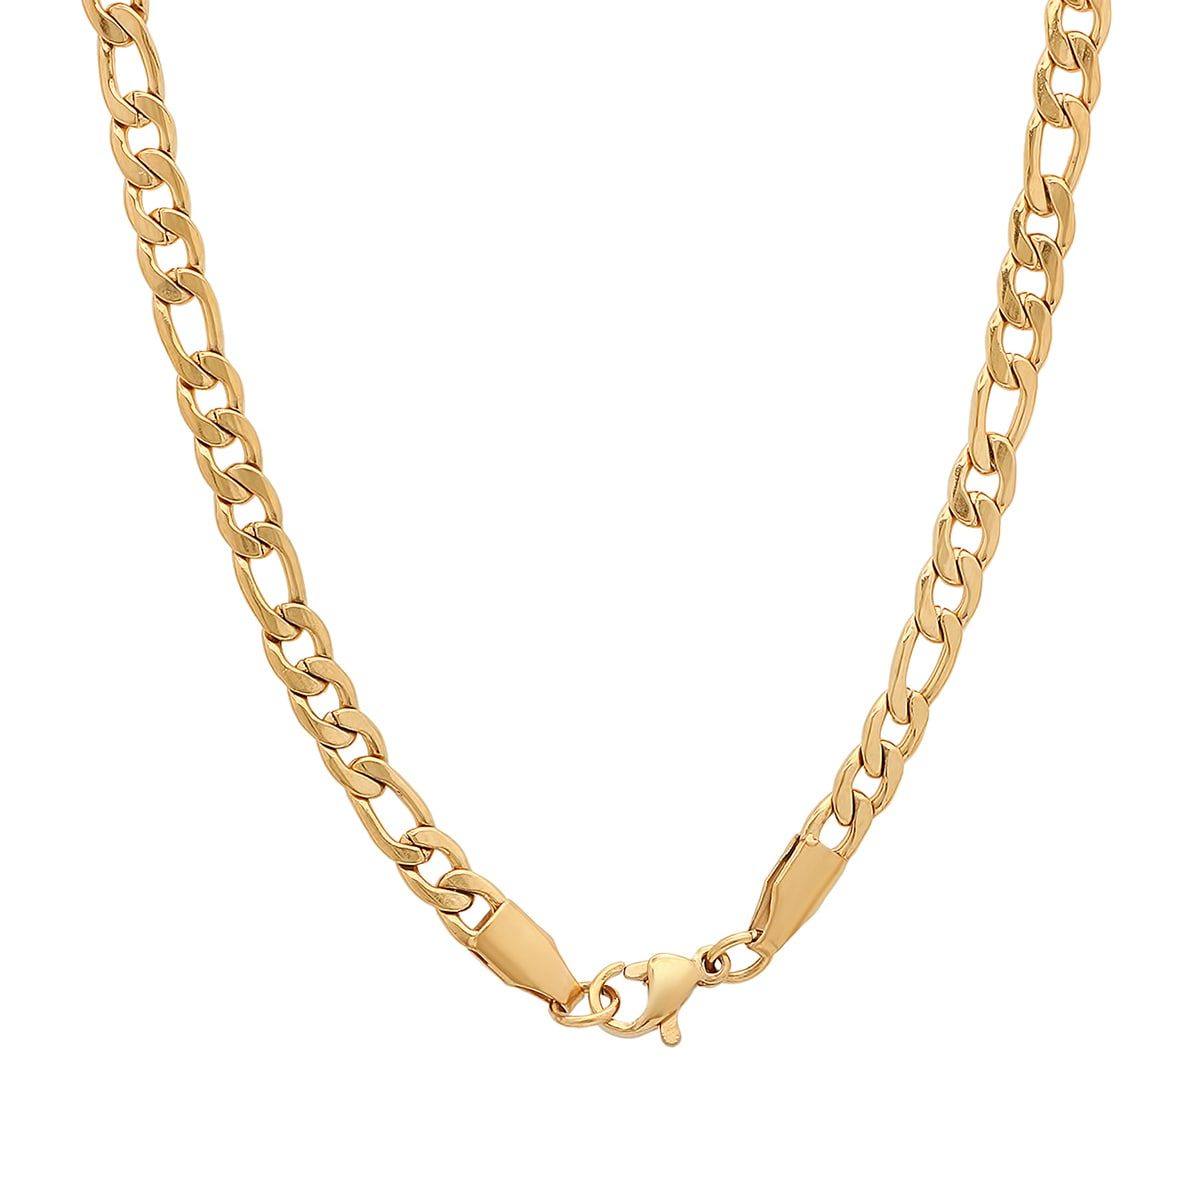 5mm 14K Gold IP Stainless Steel Mens Figaro Necklace